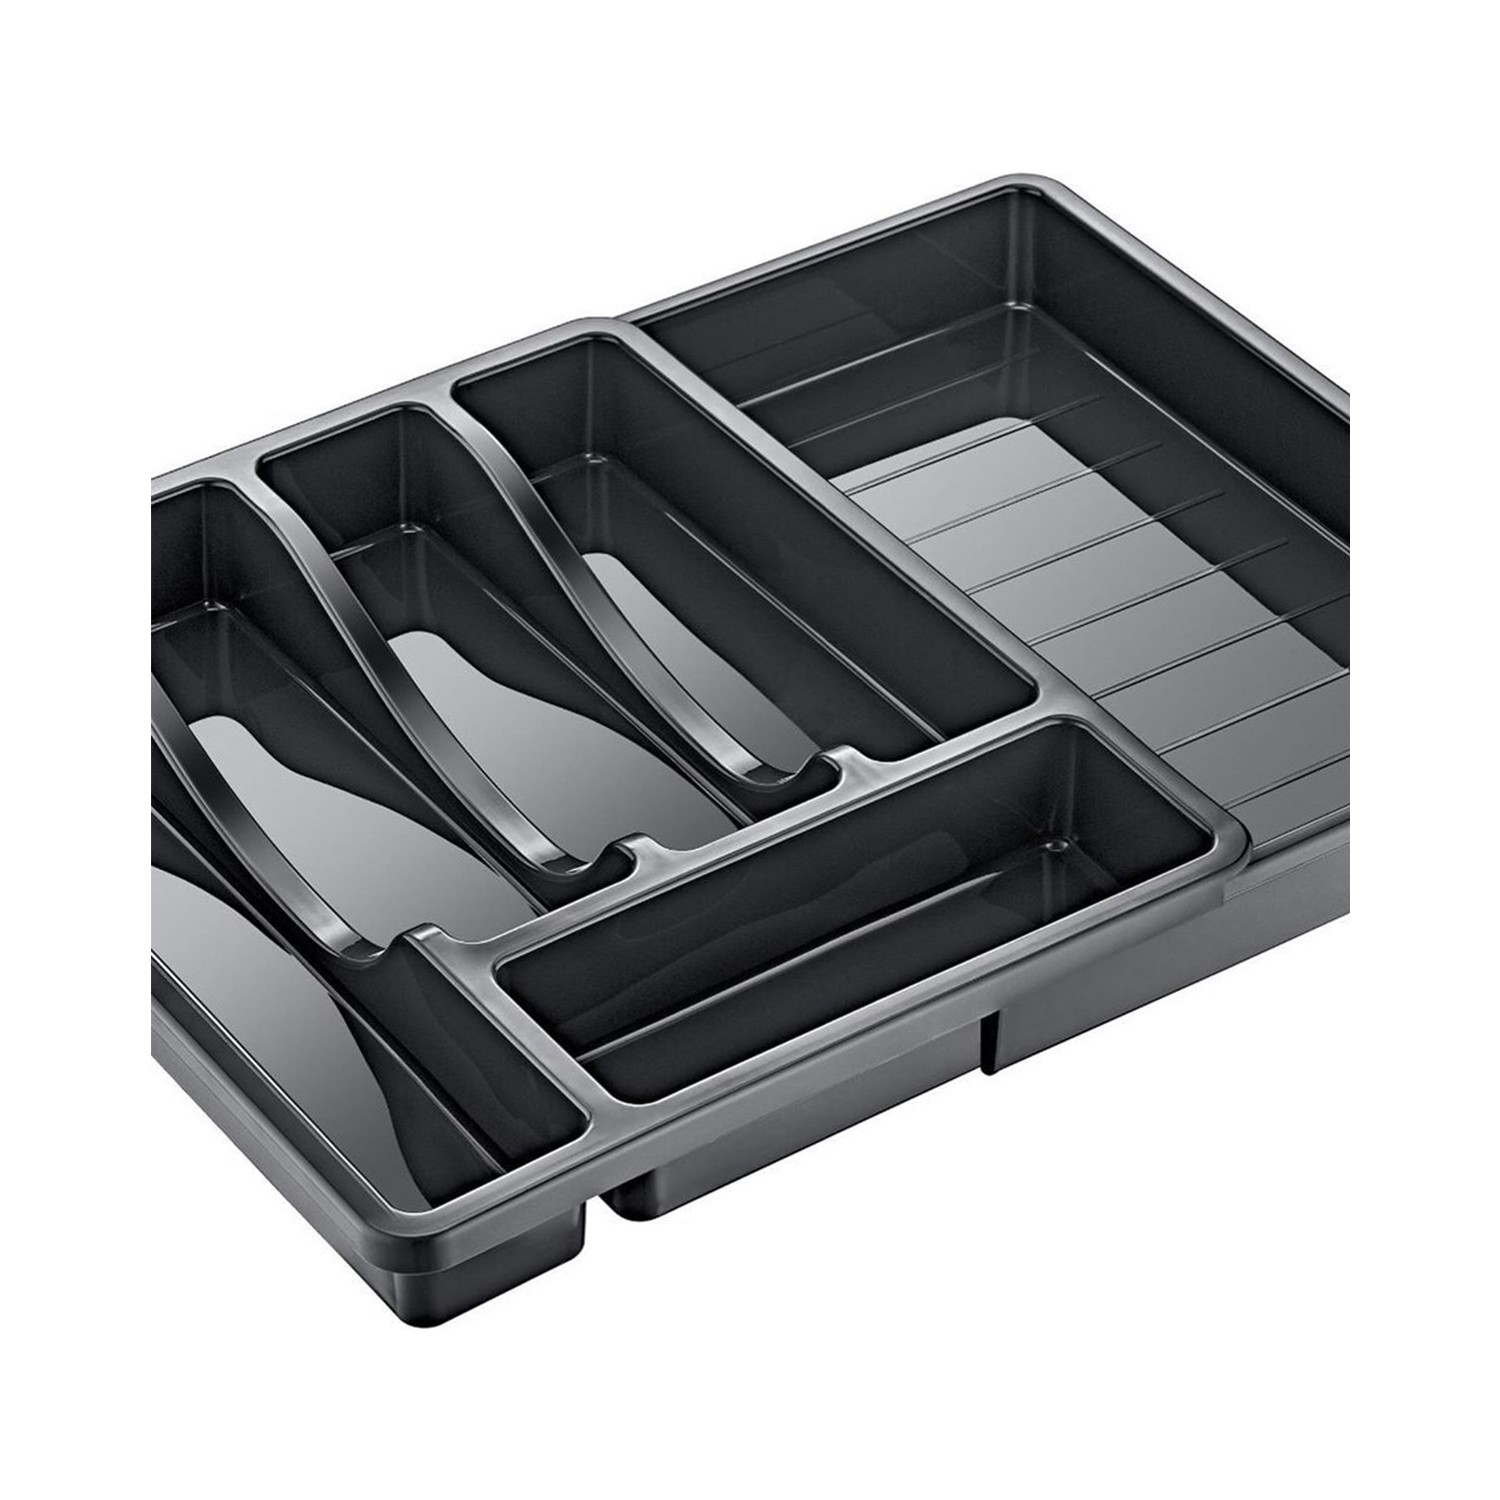 Kitchen drawer organizer Cutlery organizer Drawer insert Kitchenware Compartments tools Tidy Storage Plastic 1st class quality generator ozone vegetable and fruit cleaner ozone machine with duct attachment